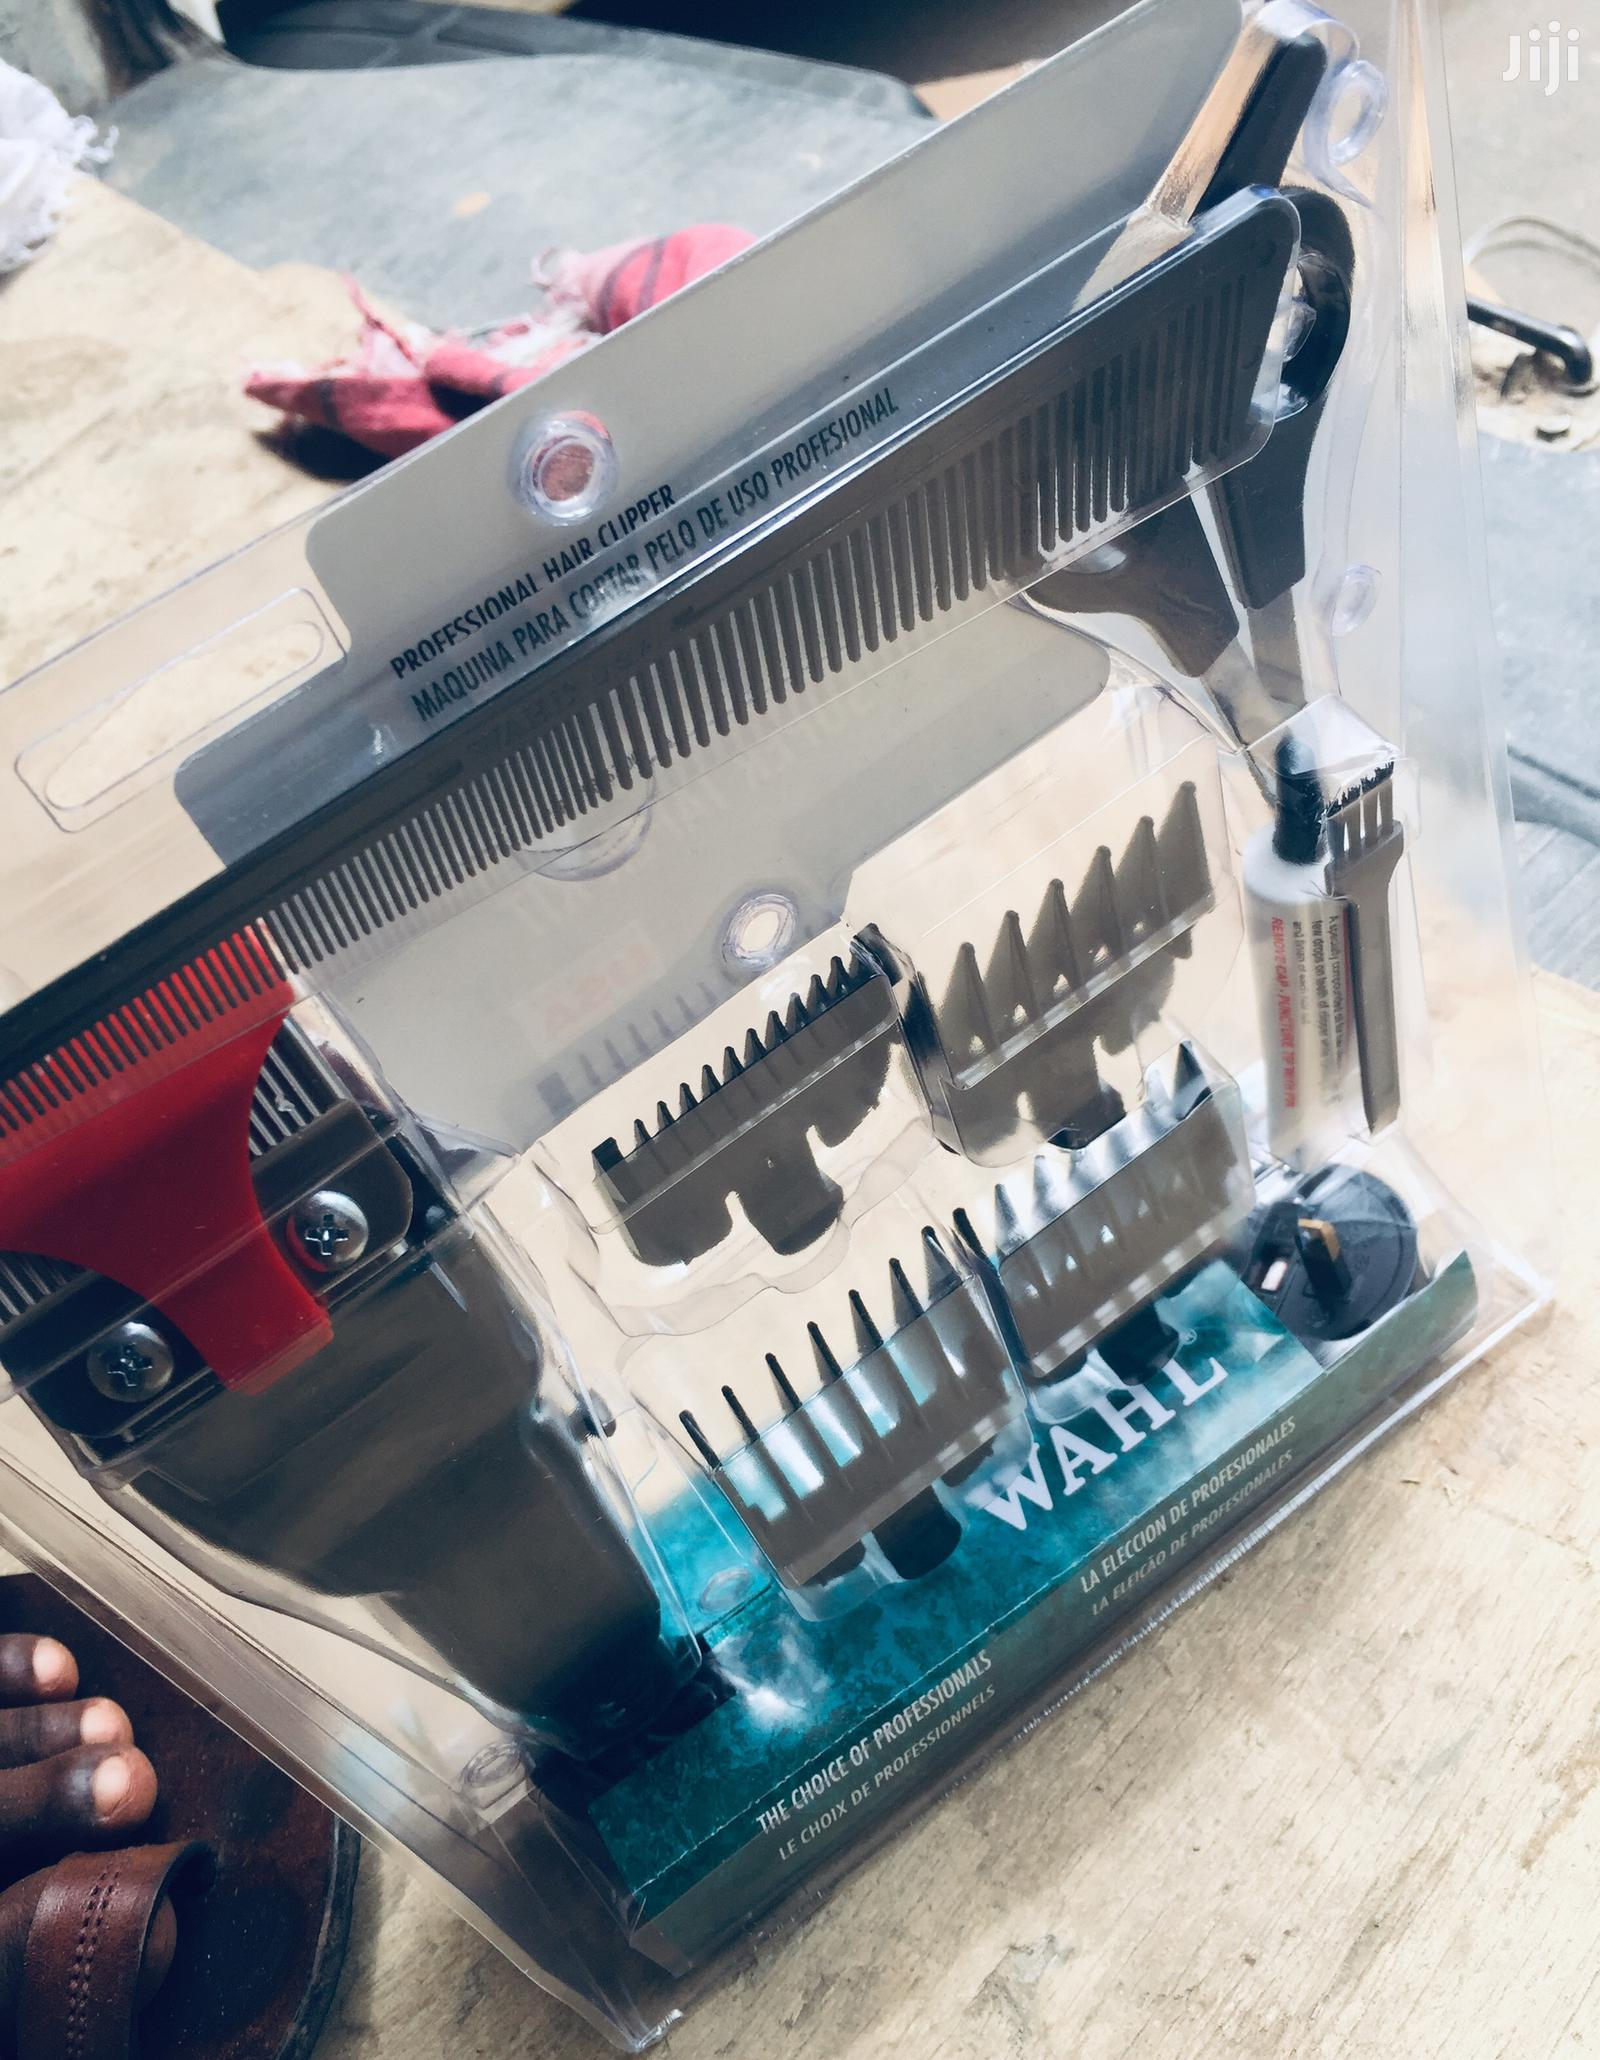 Wahl Deluxe Professional Super Taper KIT | Tools & Accessories for sale in Accra Metropolitan, Greater Accra, Ghana